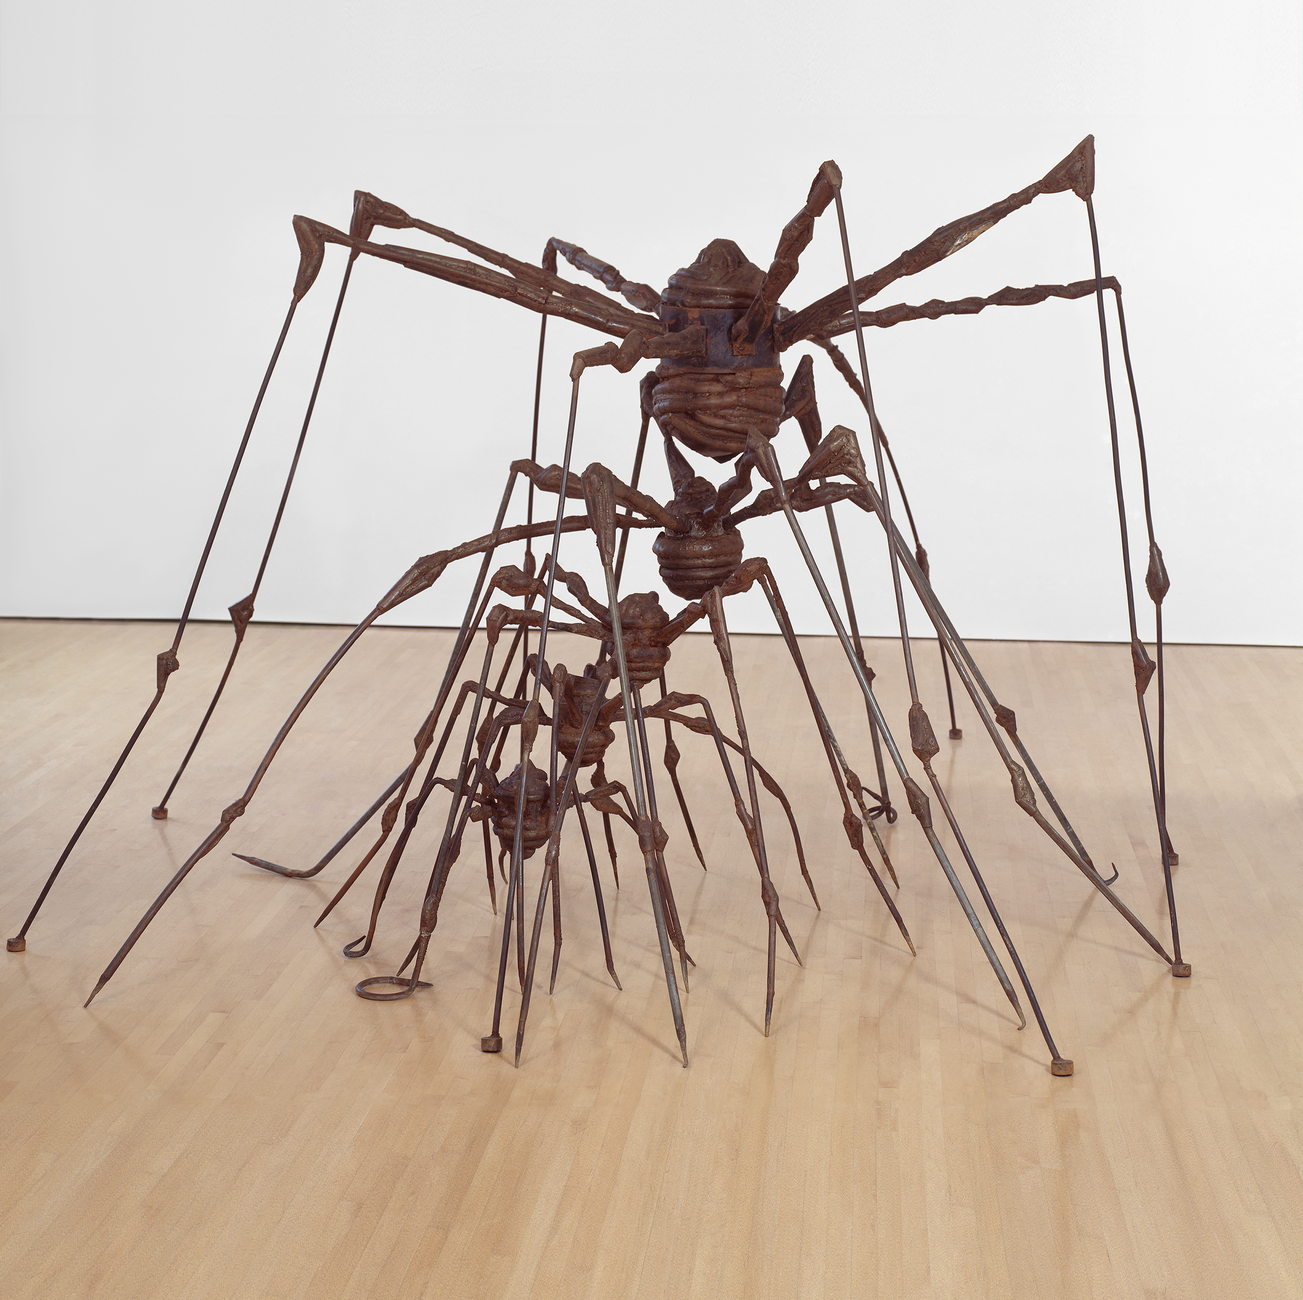 A large metal sculpture of a spider with smaller metal spider sculptures nested between its legs